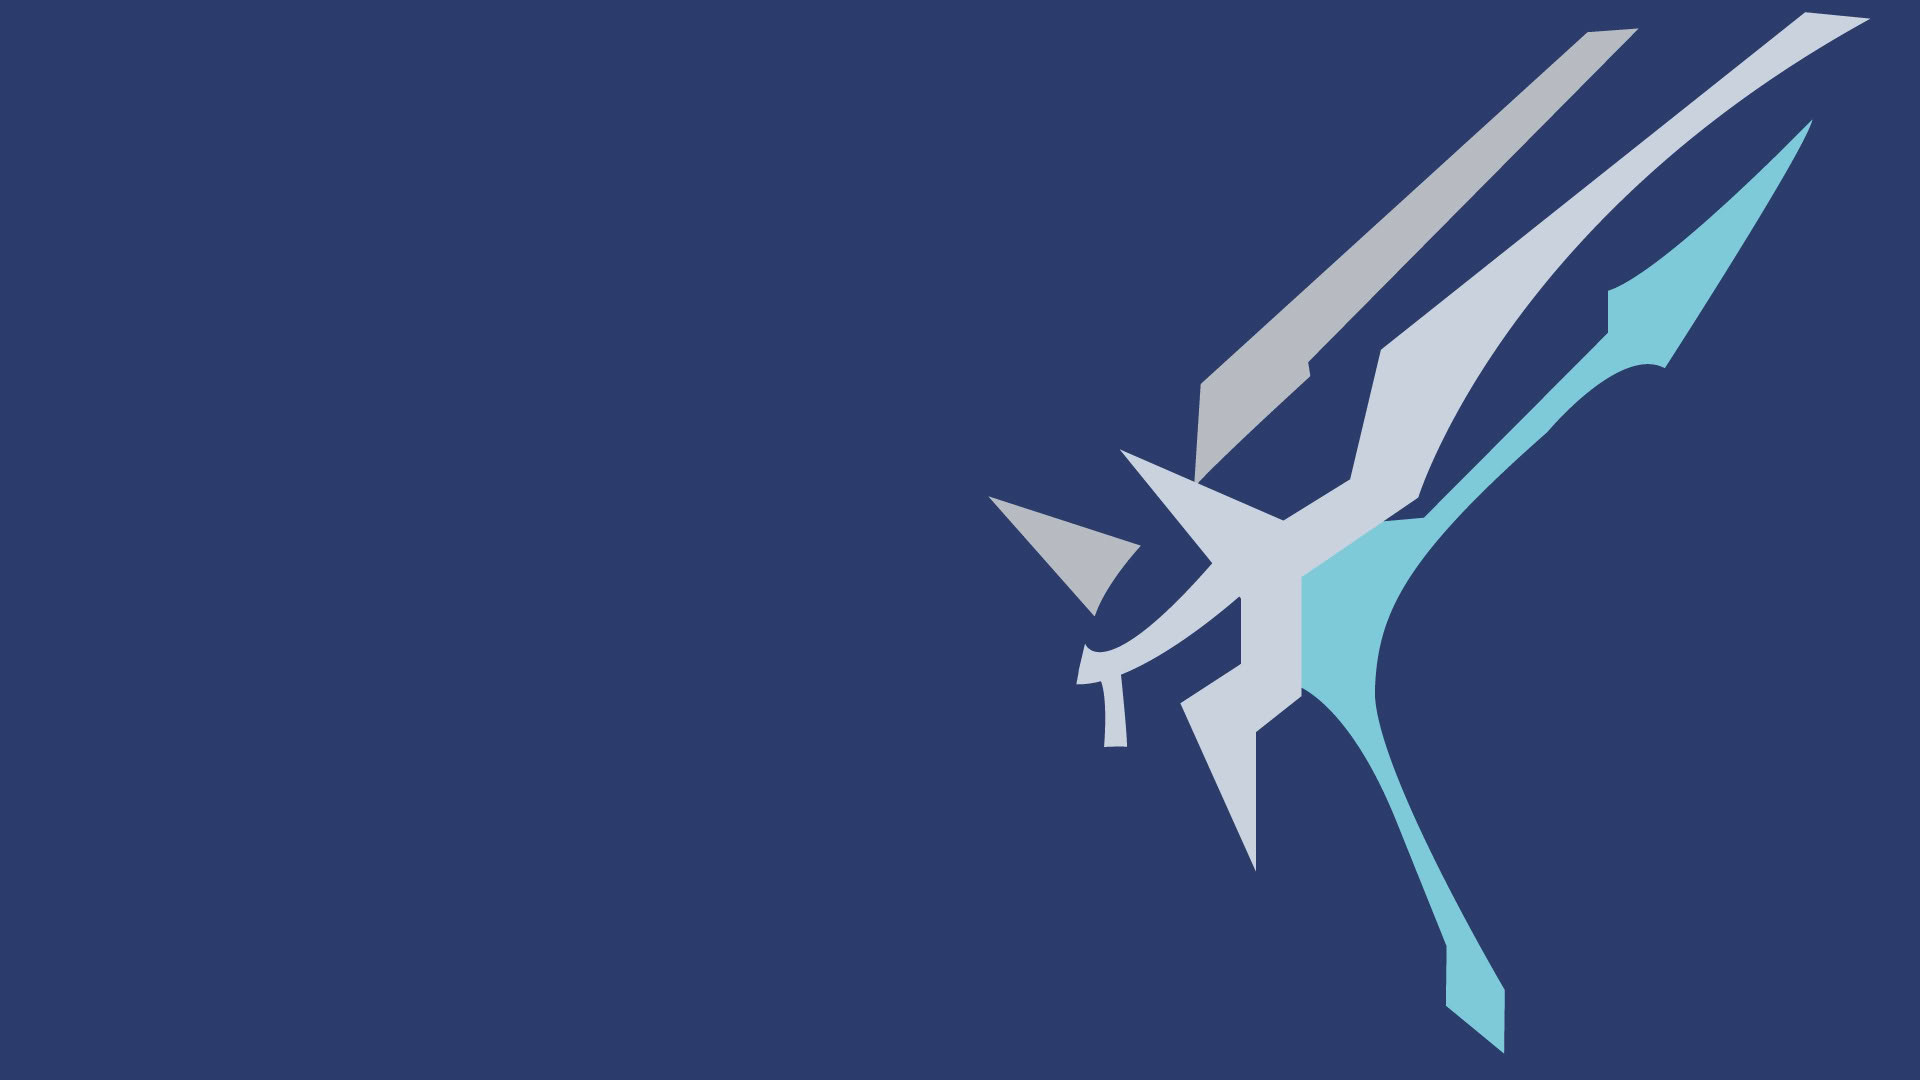 Res: 1920x1080, Dialga Wallpaper Dialga by theblacksavior